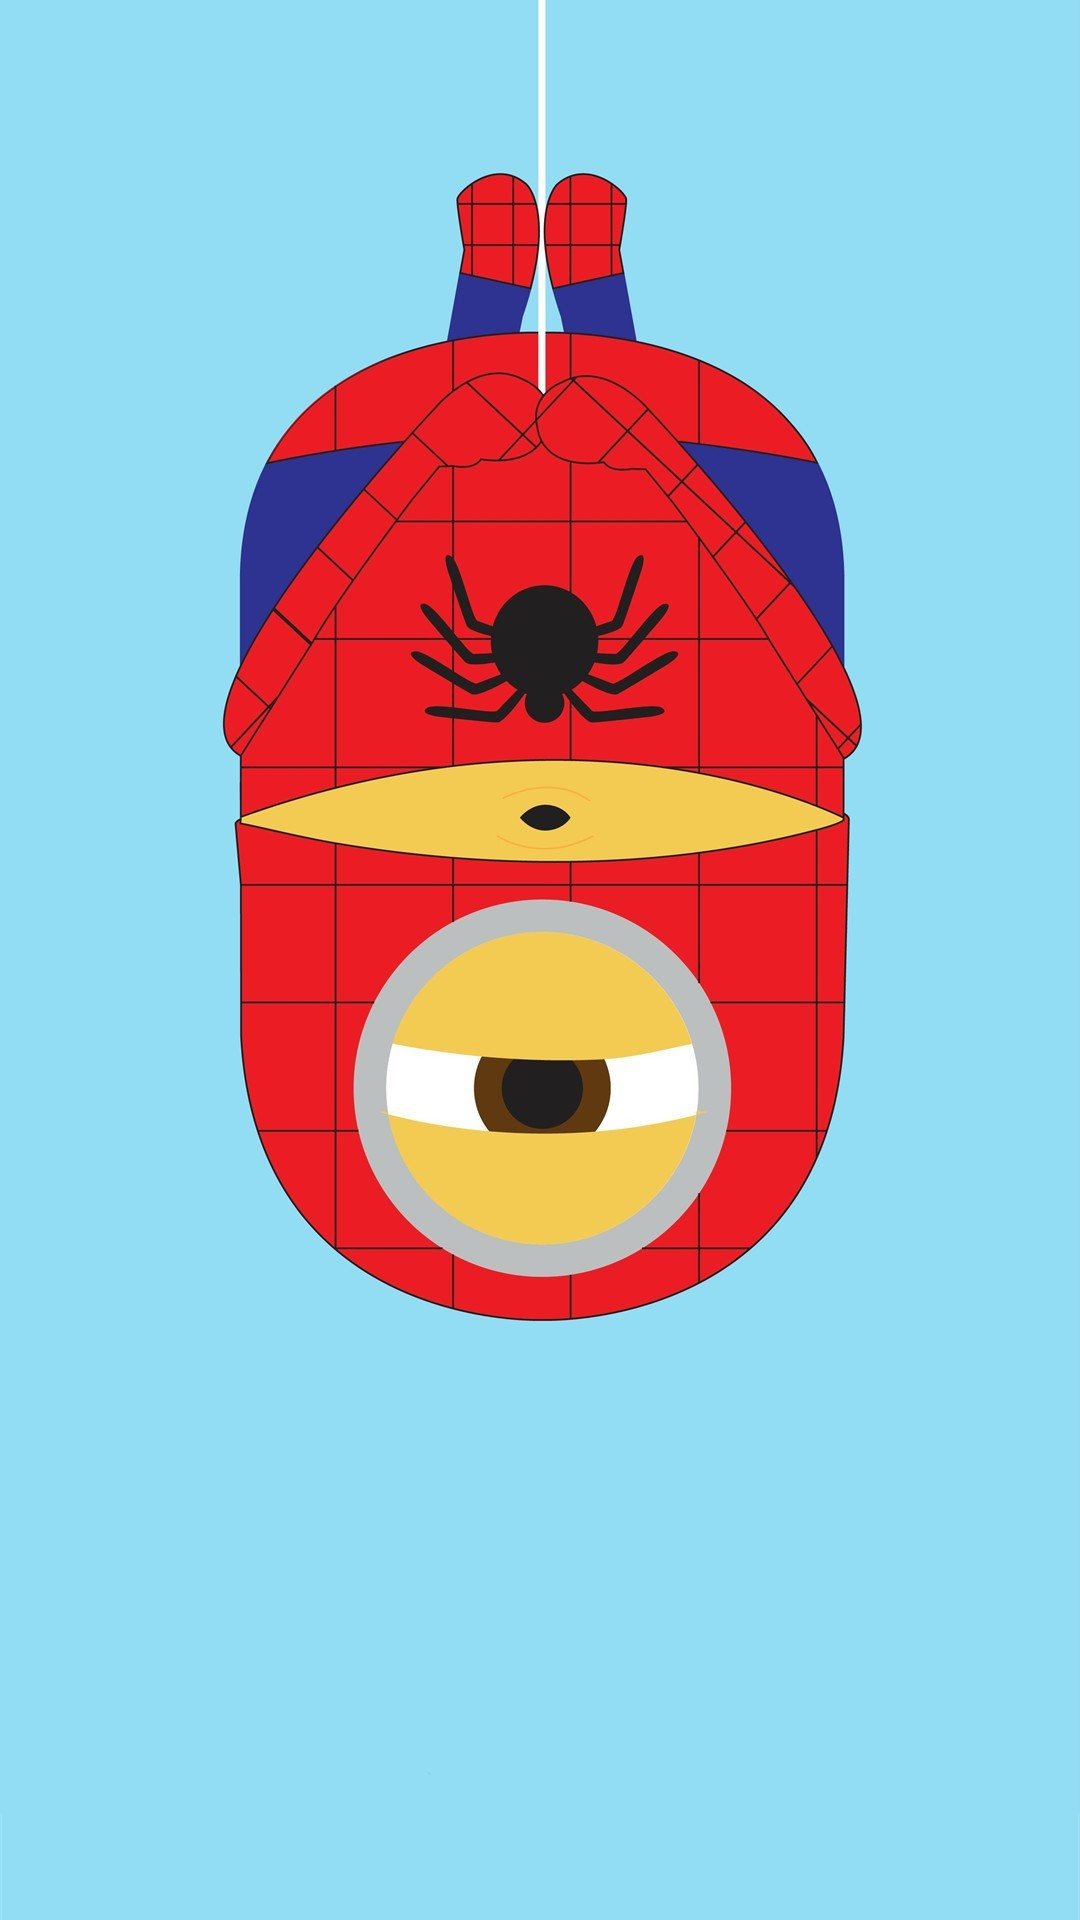 1080x1920 2014 spider-man minion iphone 6 plus wallpaper from Despicable Me for  Halloween #2014